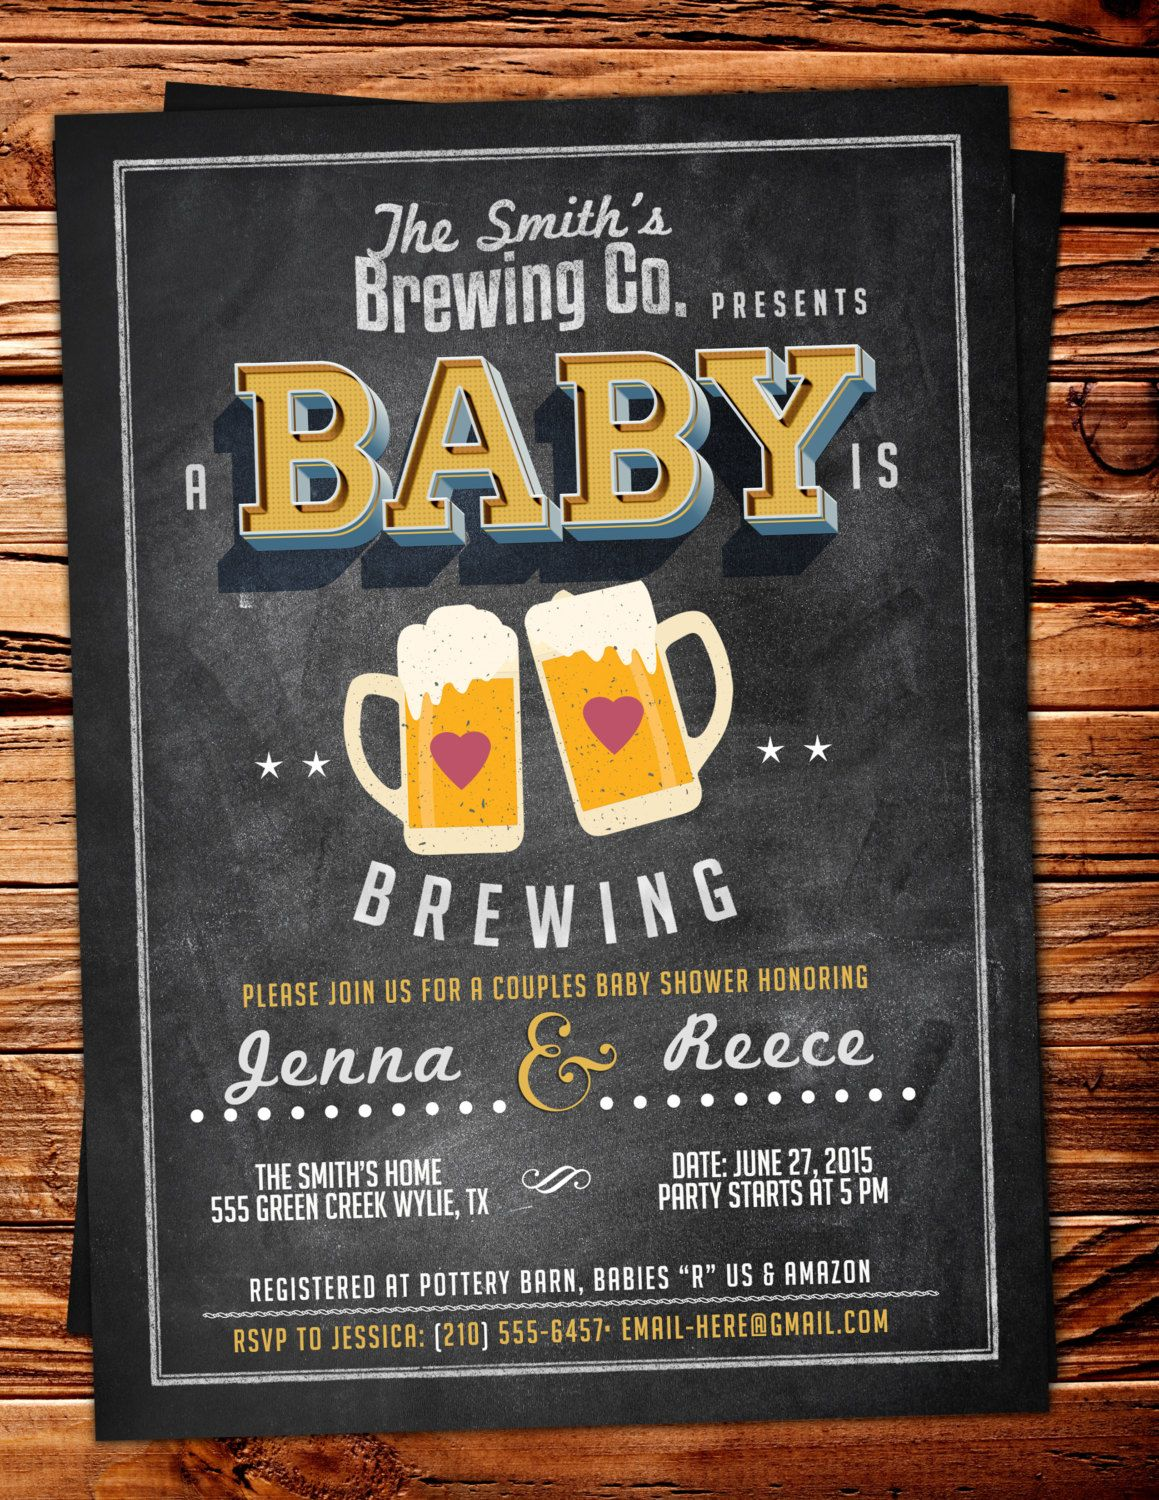 Full Size of Baby Shower:precious Coed Baby Shower Picture Designs Coed Baby Shower Couples Baby Shower Invitations Coed Baby Shower Unibaby Shower Ideas